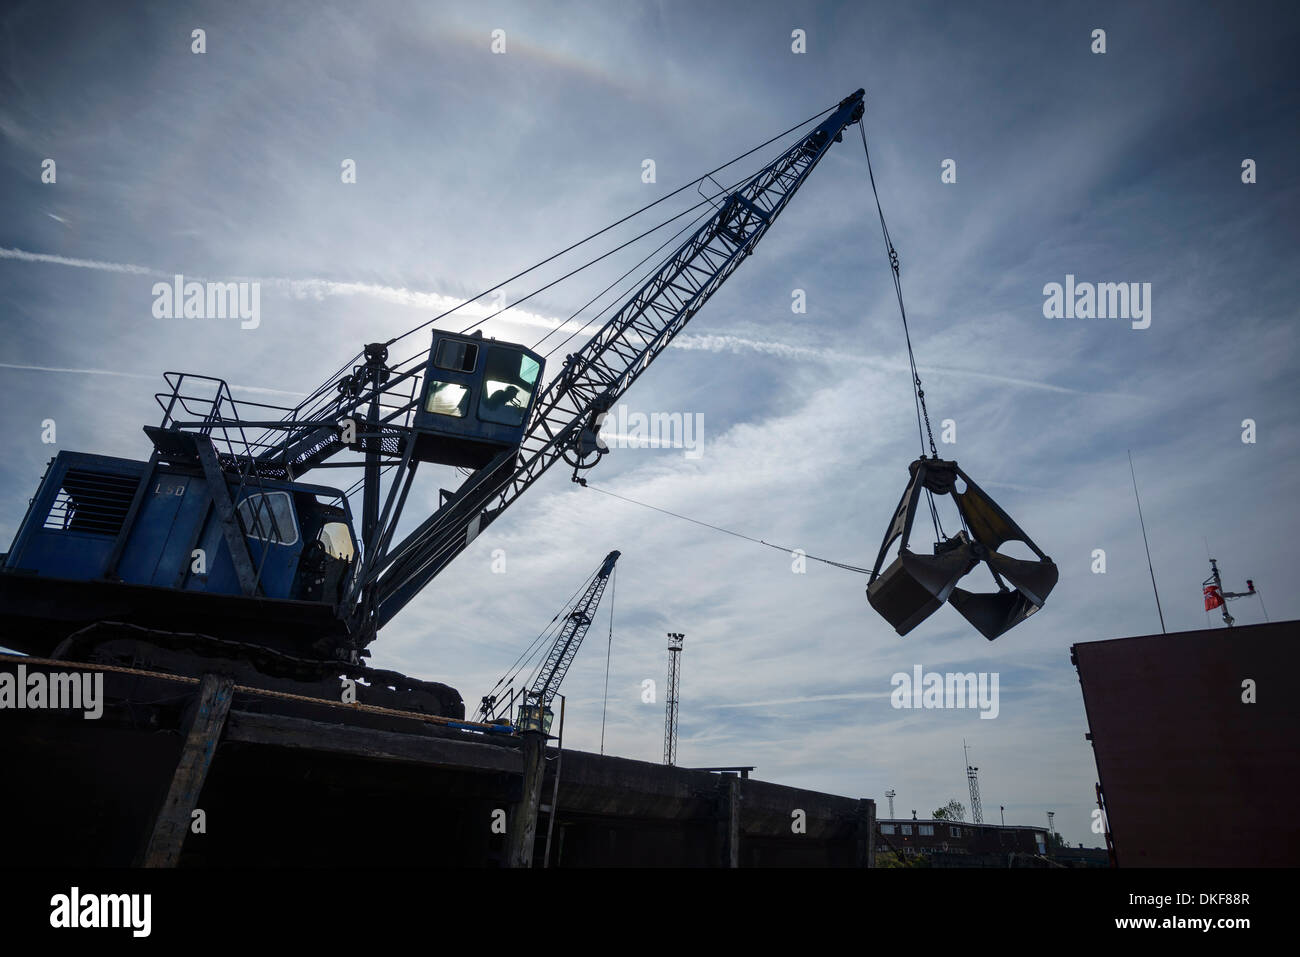 Low angle view of crane in silhouette in port - Stock Image